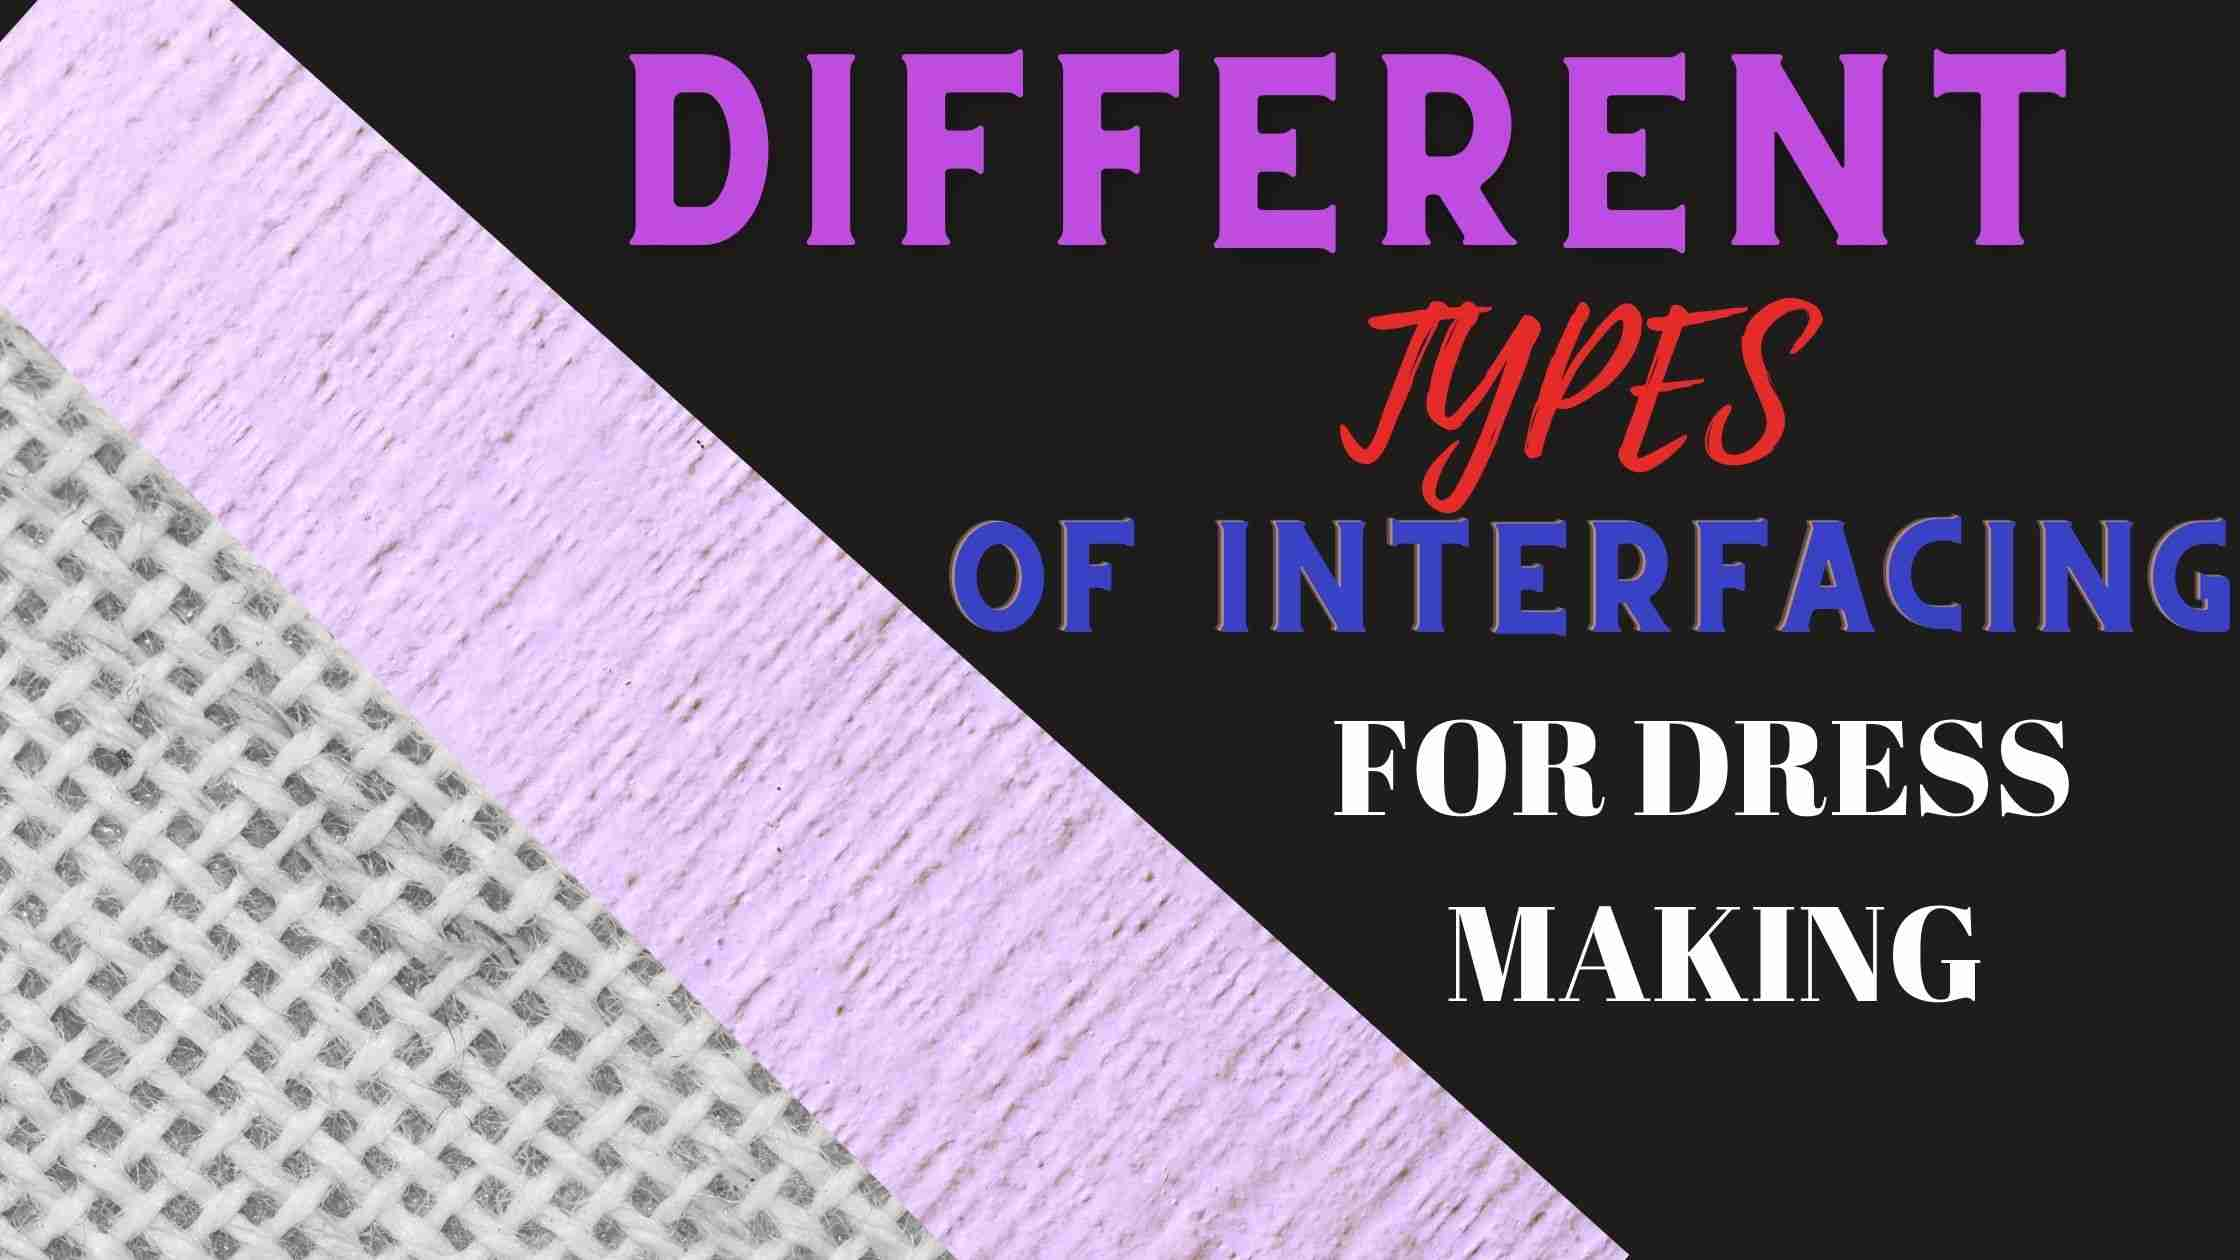 You are currently viewing DIFFERENT TYPES OF INTERFACING FOR DRESS MAKING.